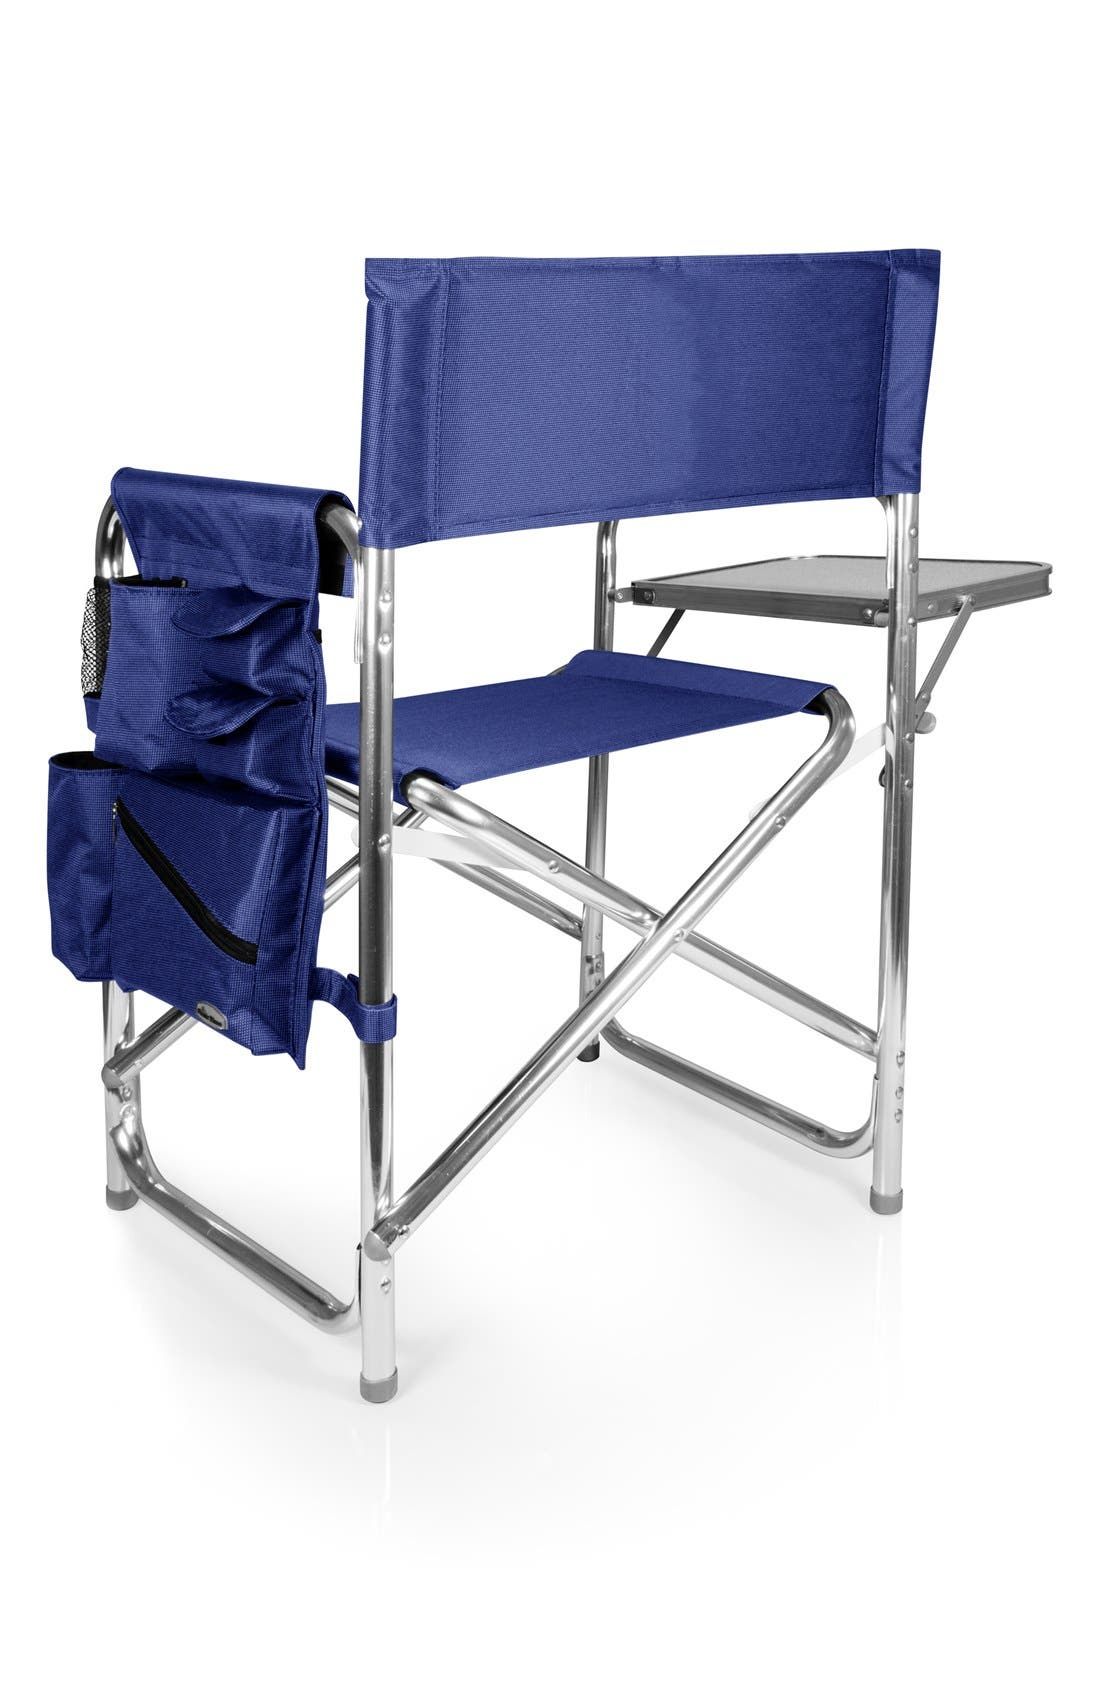 'Sports' Folding Chair,                             Alternate thumbnail 3, color,                             NAVY